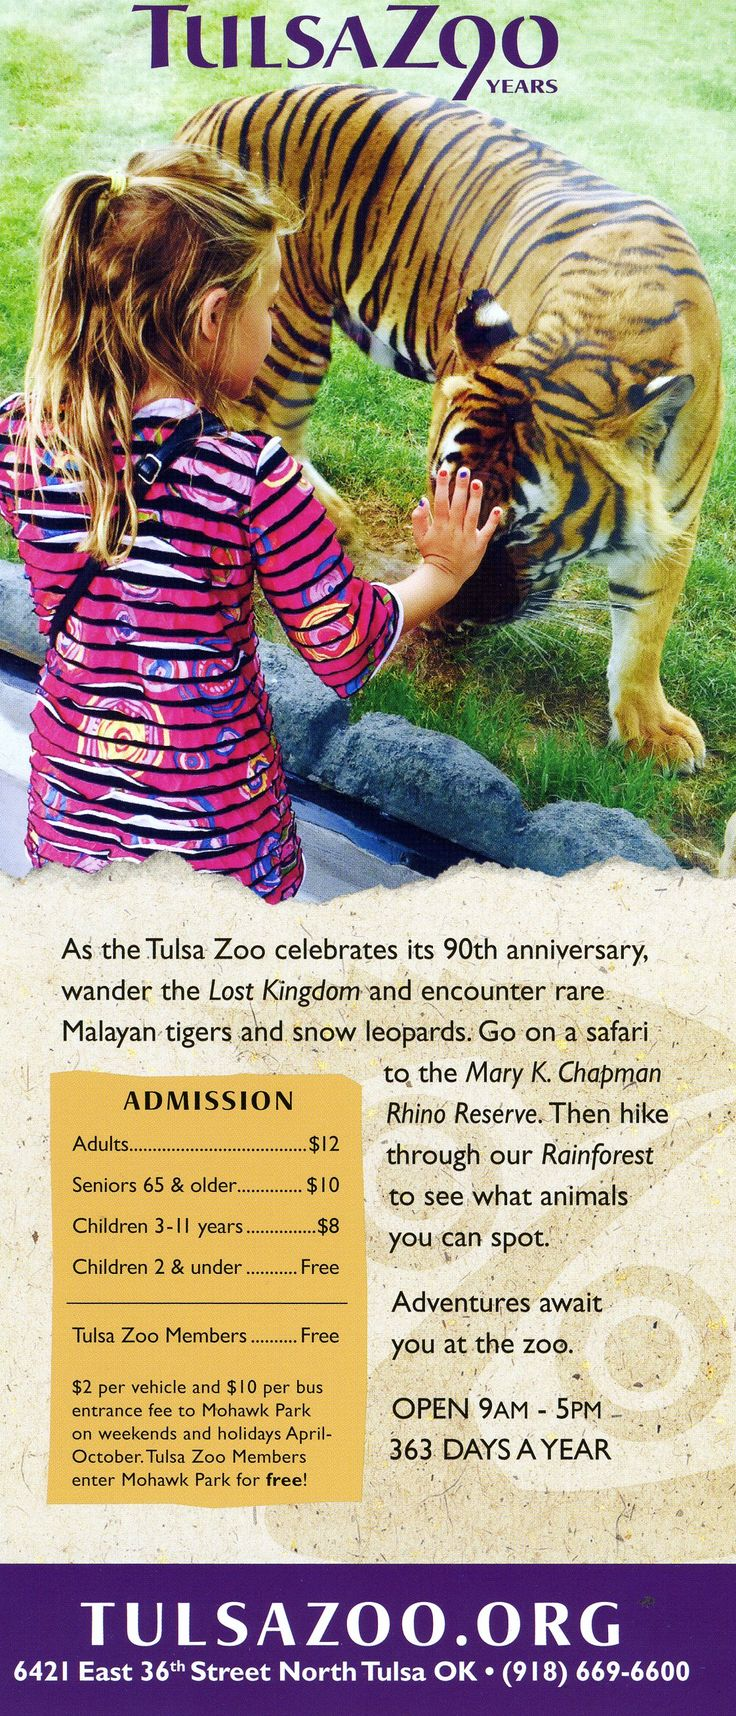 Use this free brochure to learn more about the Tulsa Zoo before your next visit. Open 363 days a year, with over 2500 animals, the Tulsa Zoo is the ideal place to make new memories and have a variety of adventures. Visit year-round with indoor heated and air-conditioned eco-themed buildings, nearly 500 species of animals & plenty of exhibits.